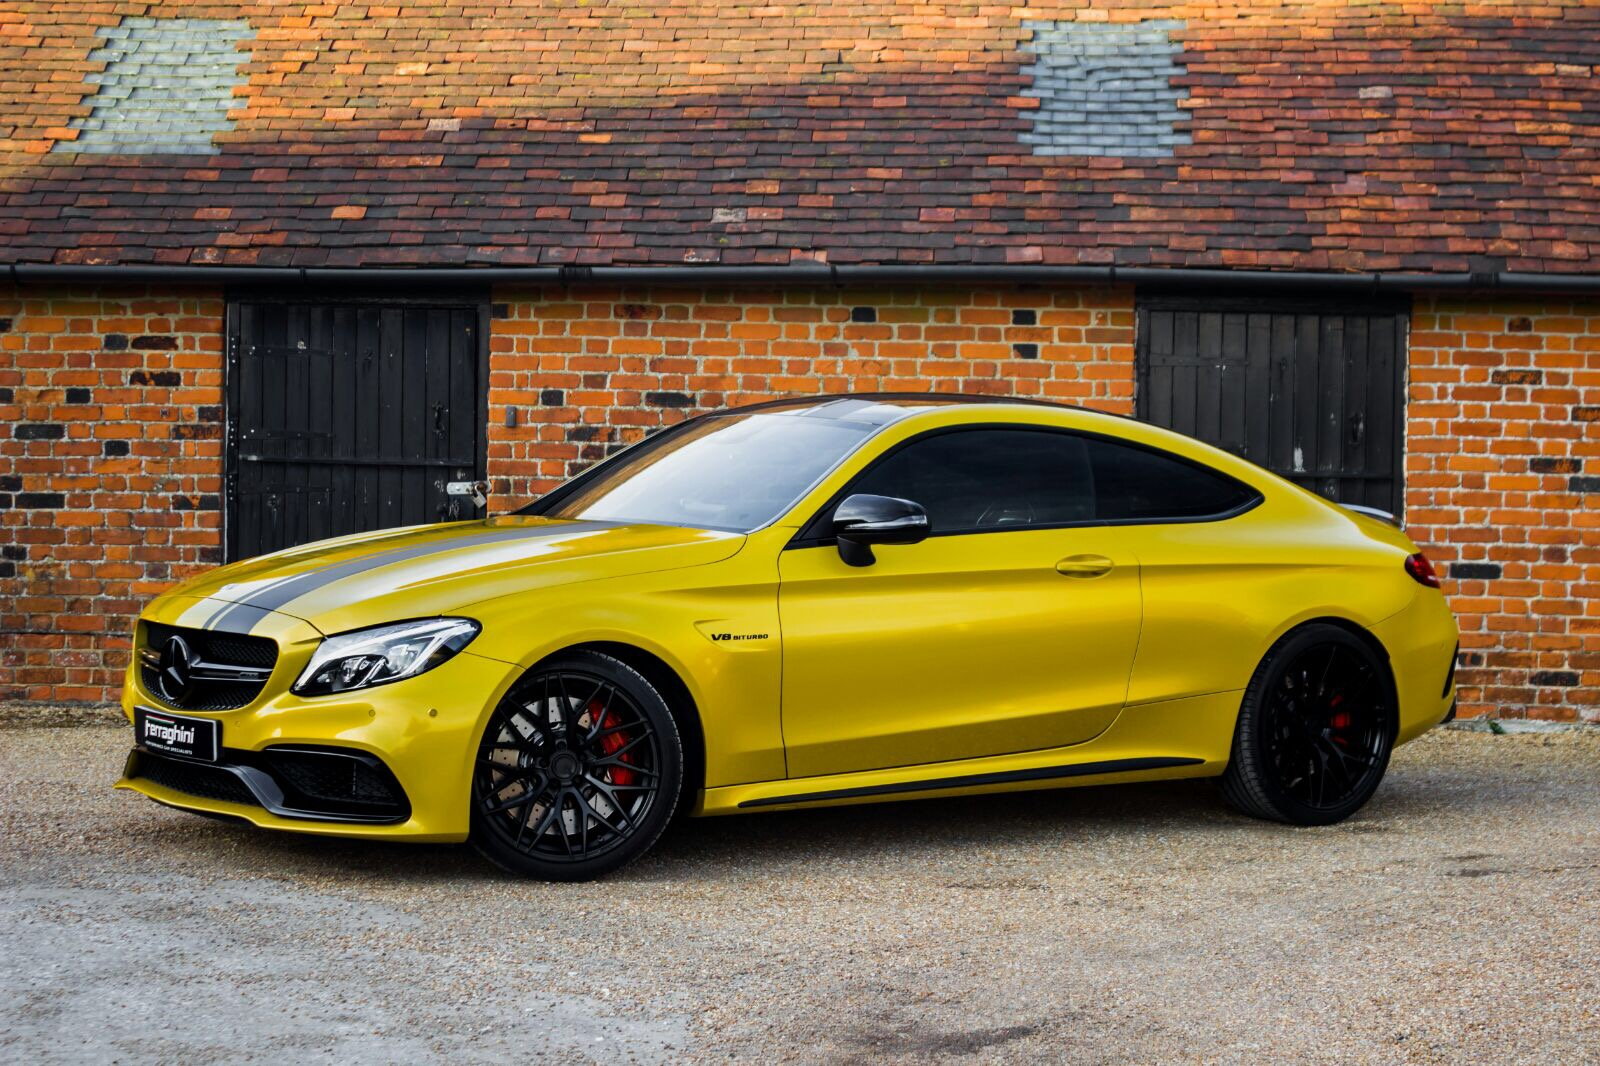 Mercedes Benz C63 AMG W205 Yellow Black ZF01